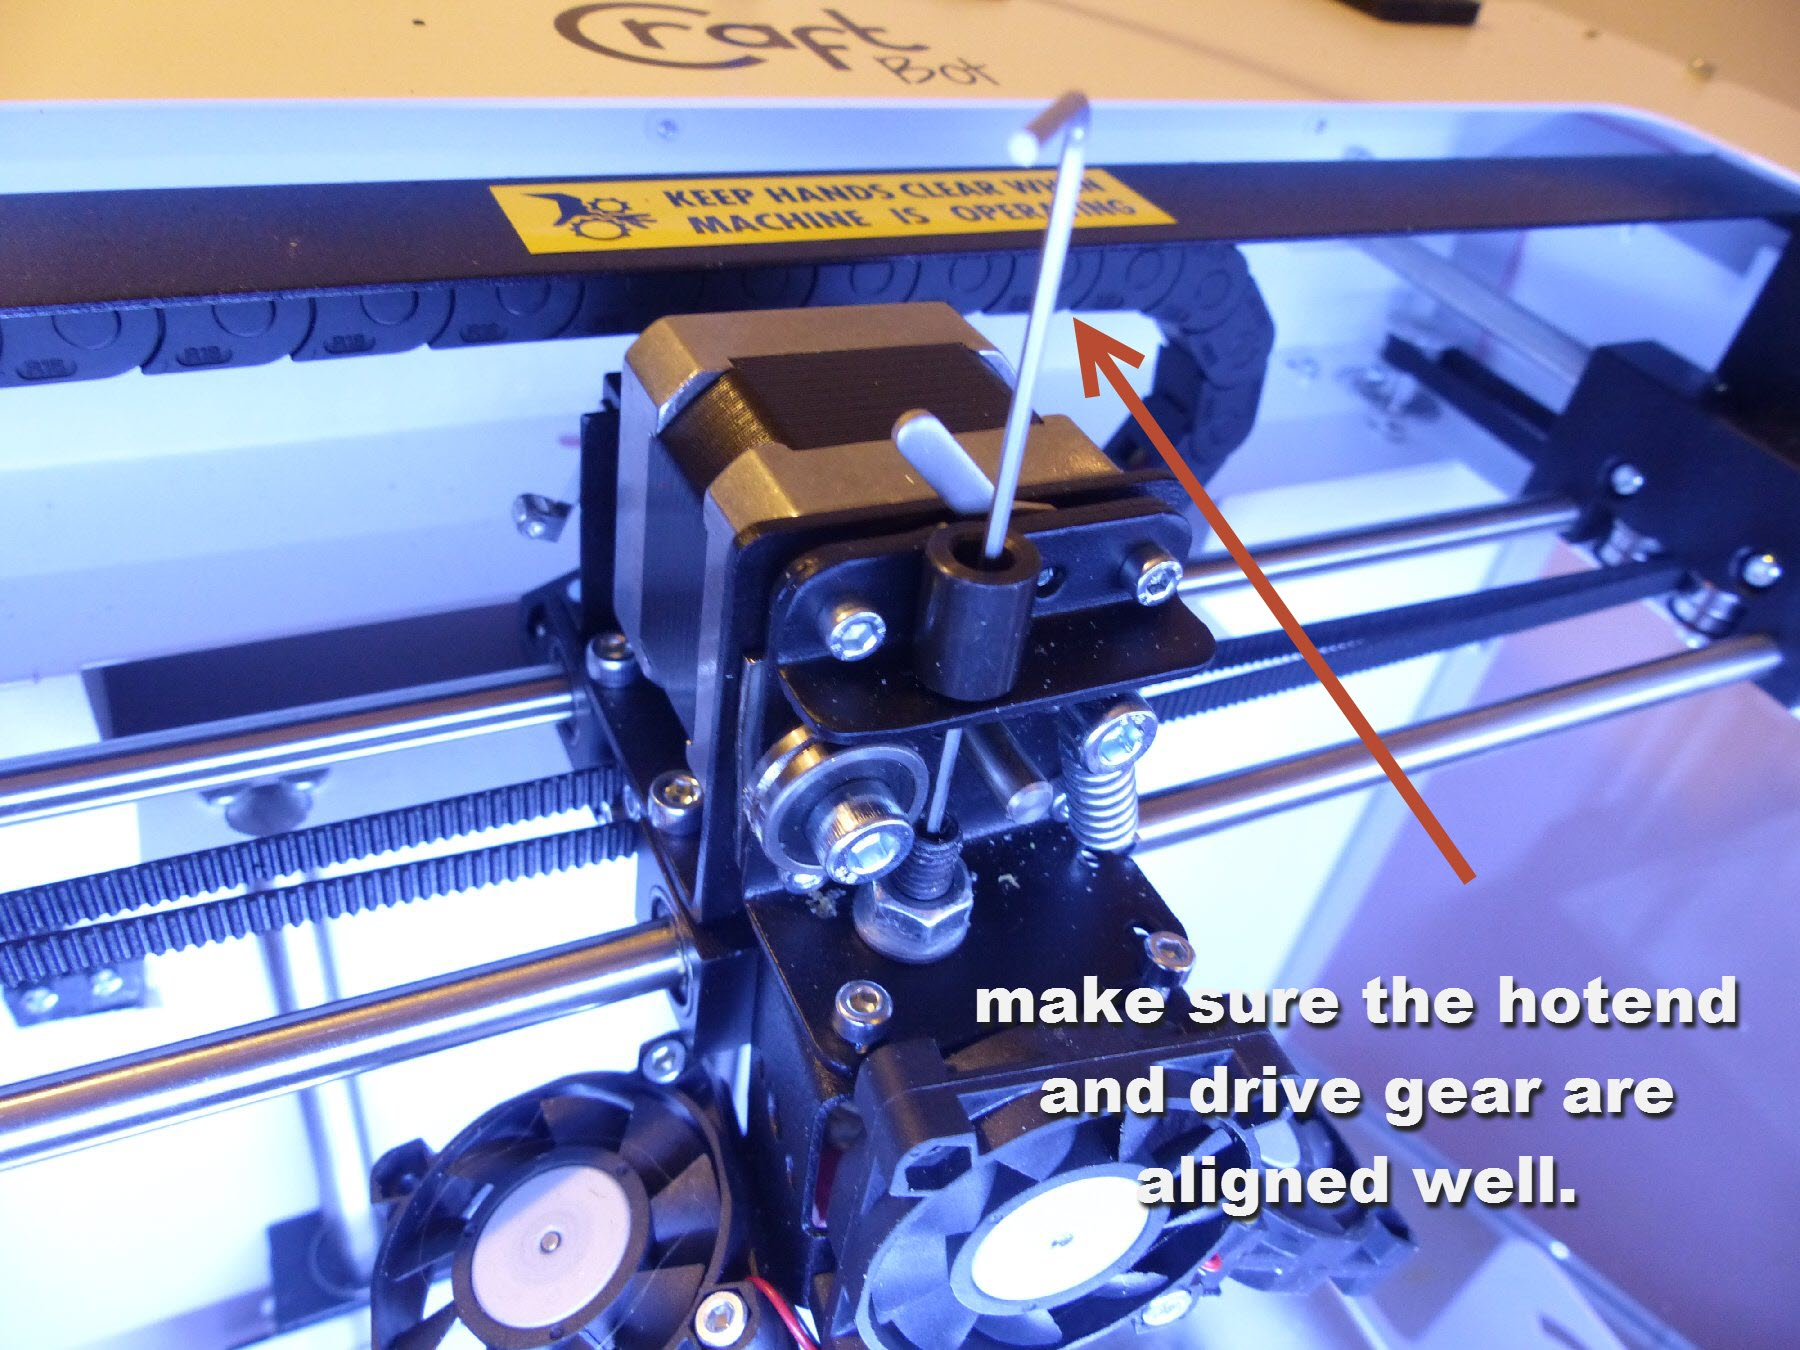 mini-18 check if the extruder and drive are inline